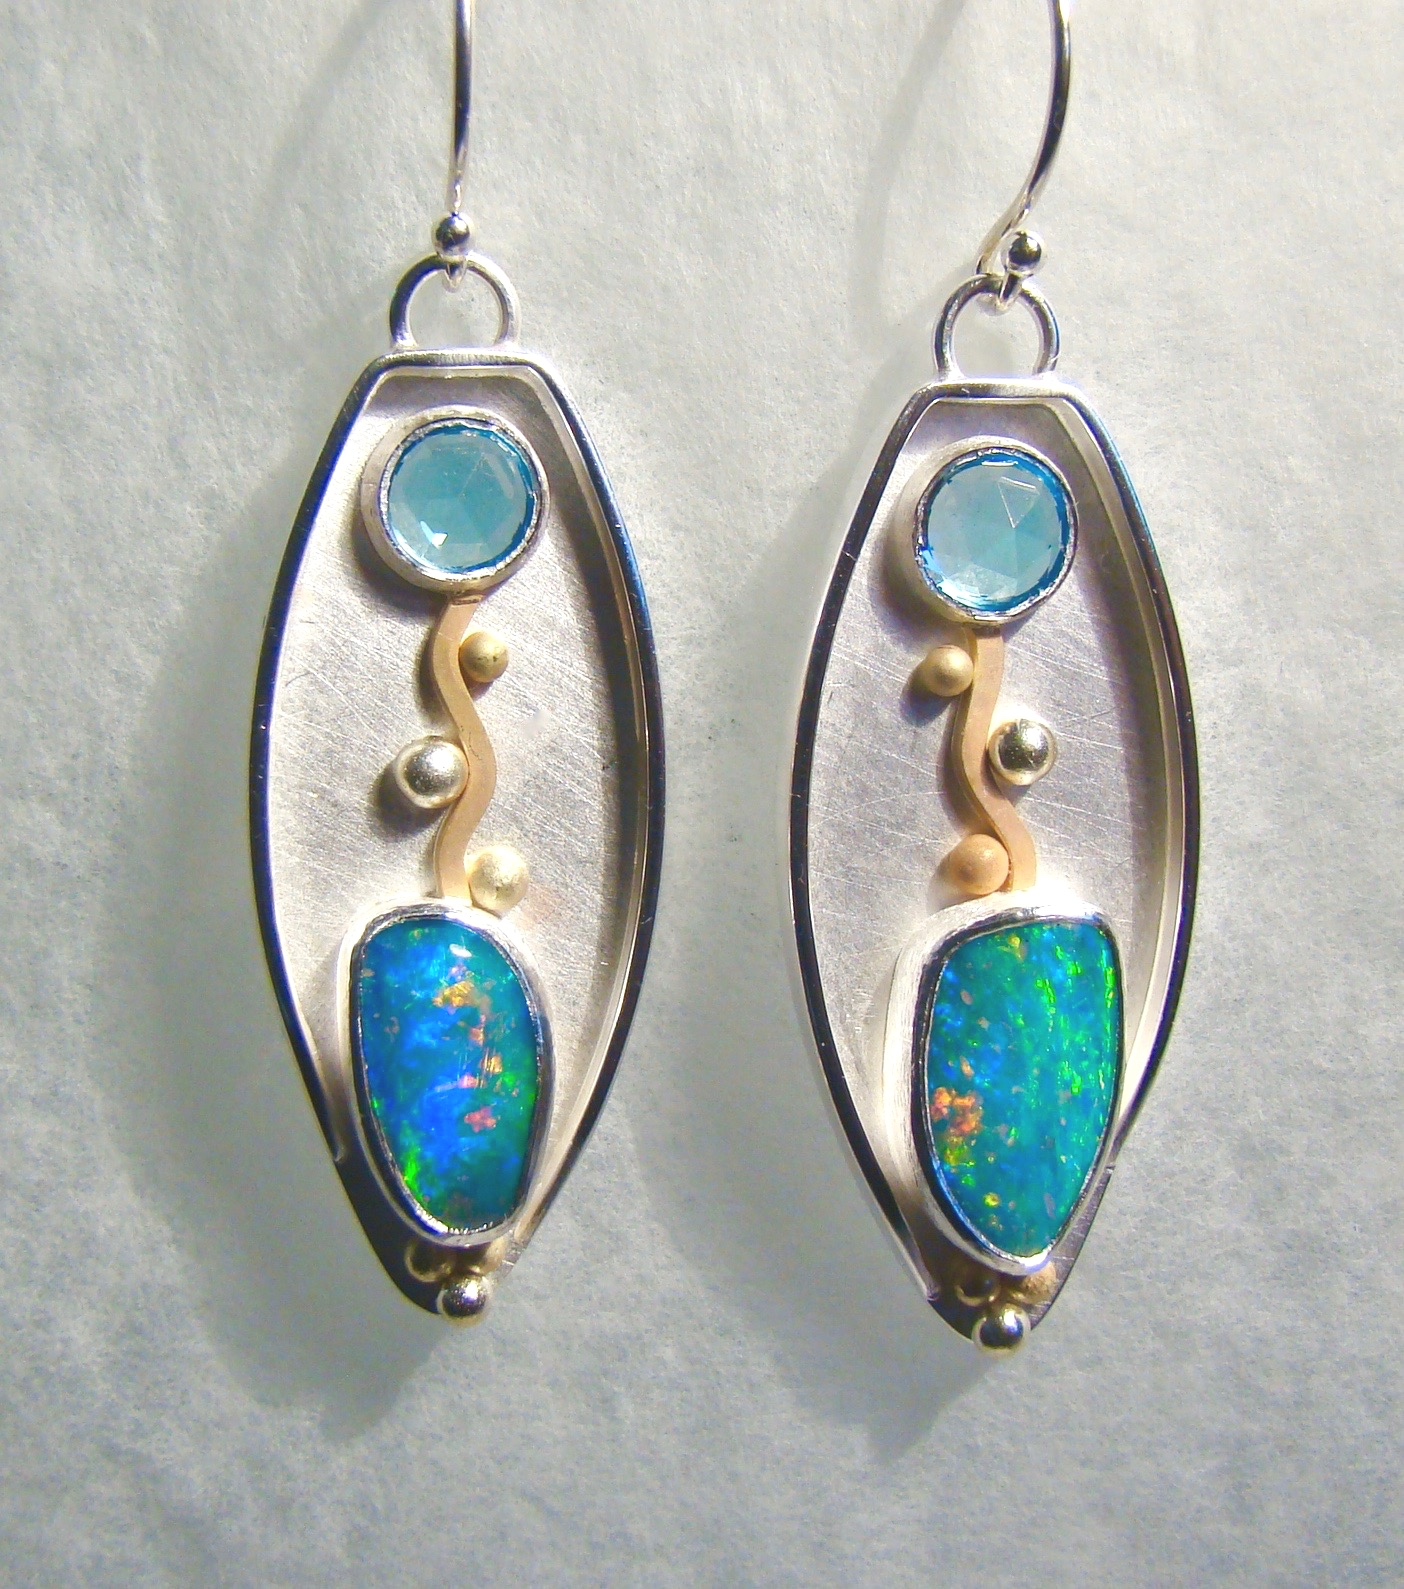 Topaz+opal+earrings+%23860.jpg